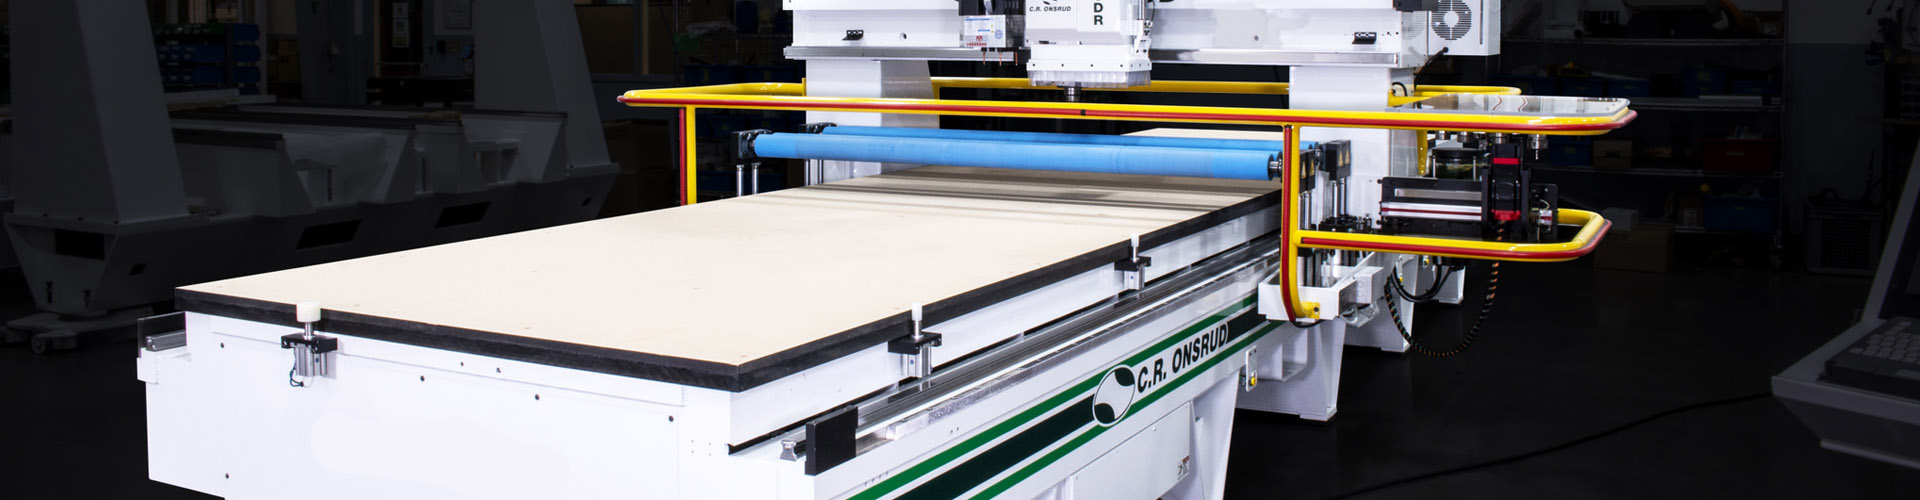 Roller Hold Down CNC Router